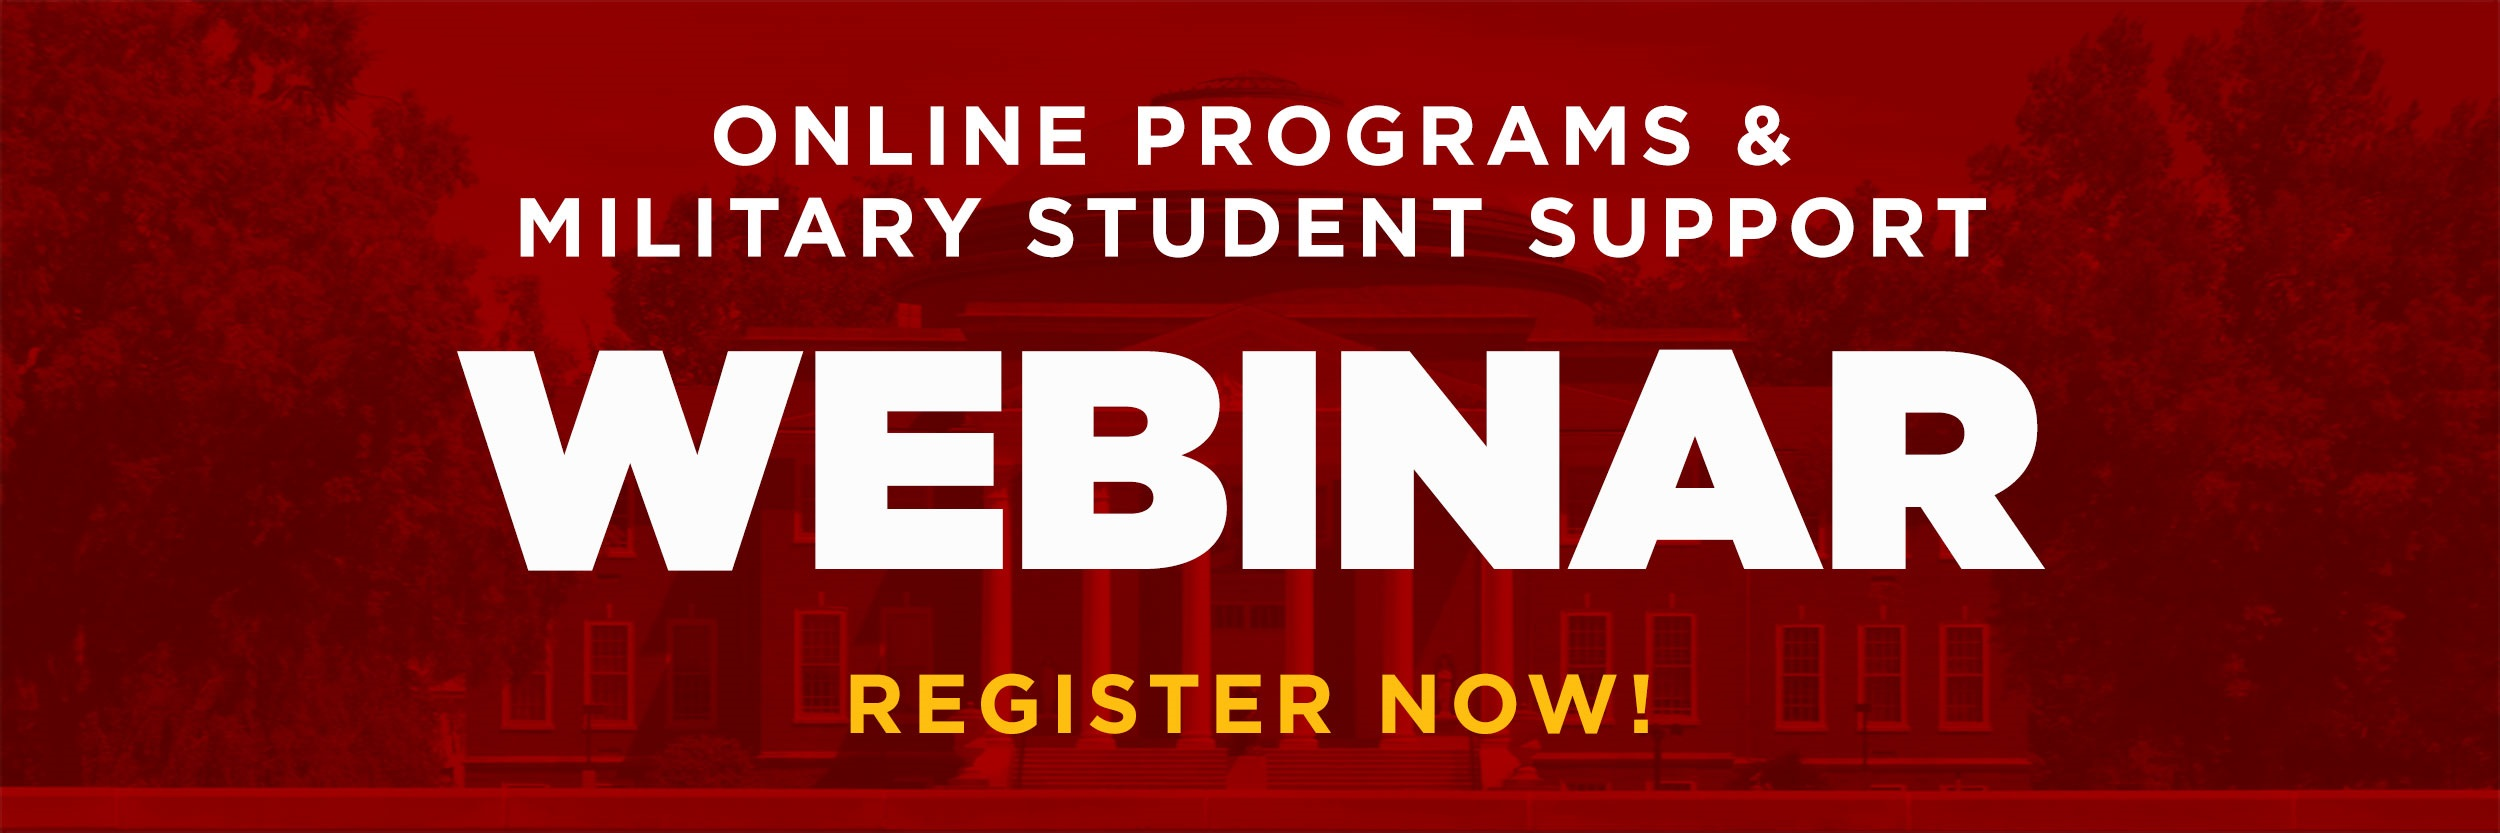 UofL Online Programs & Student Support Services - Militry Webinar, Register Now